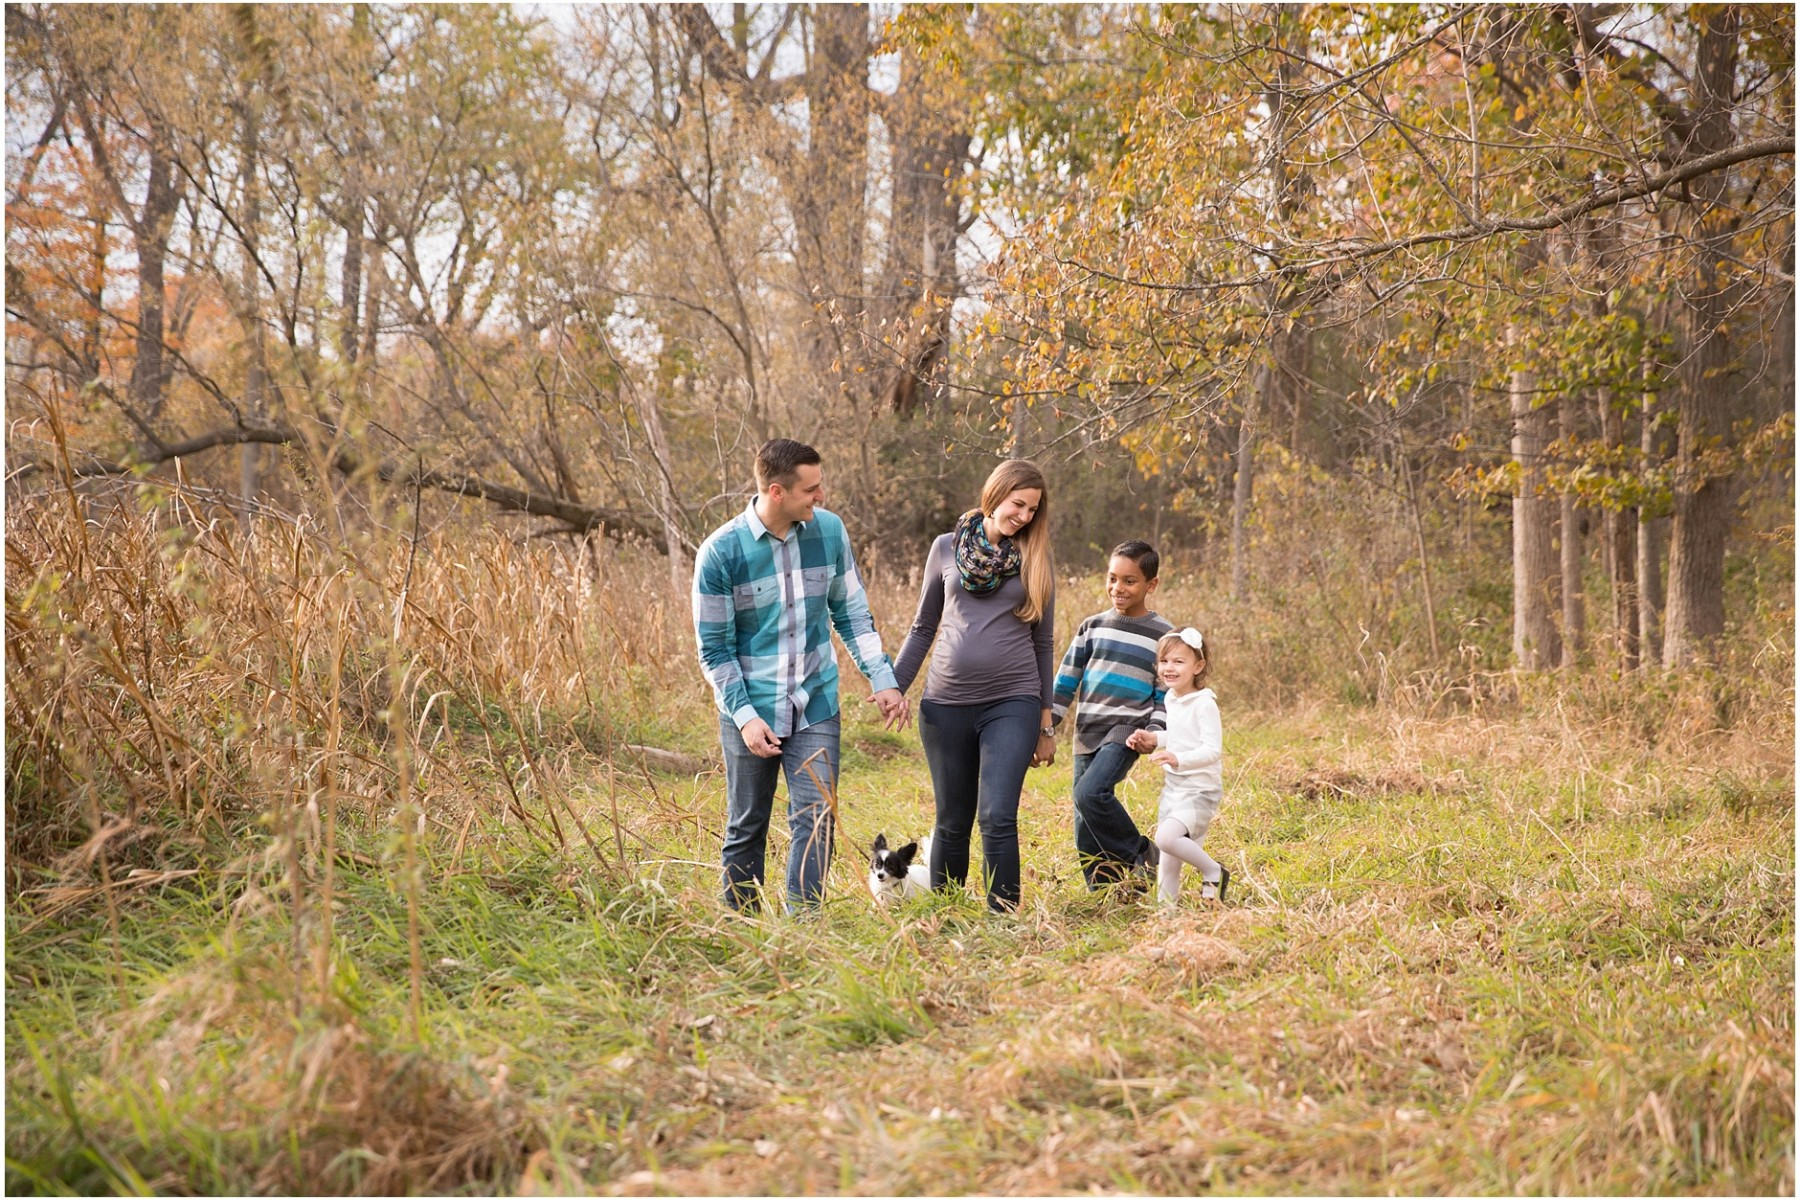 Kaminski Family Session // Northville, MI